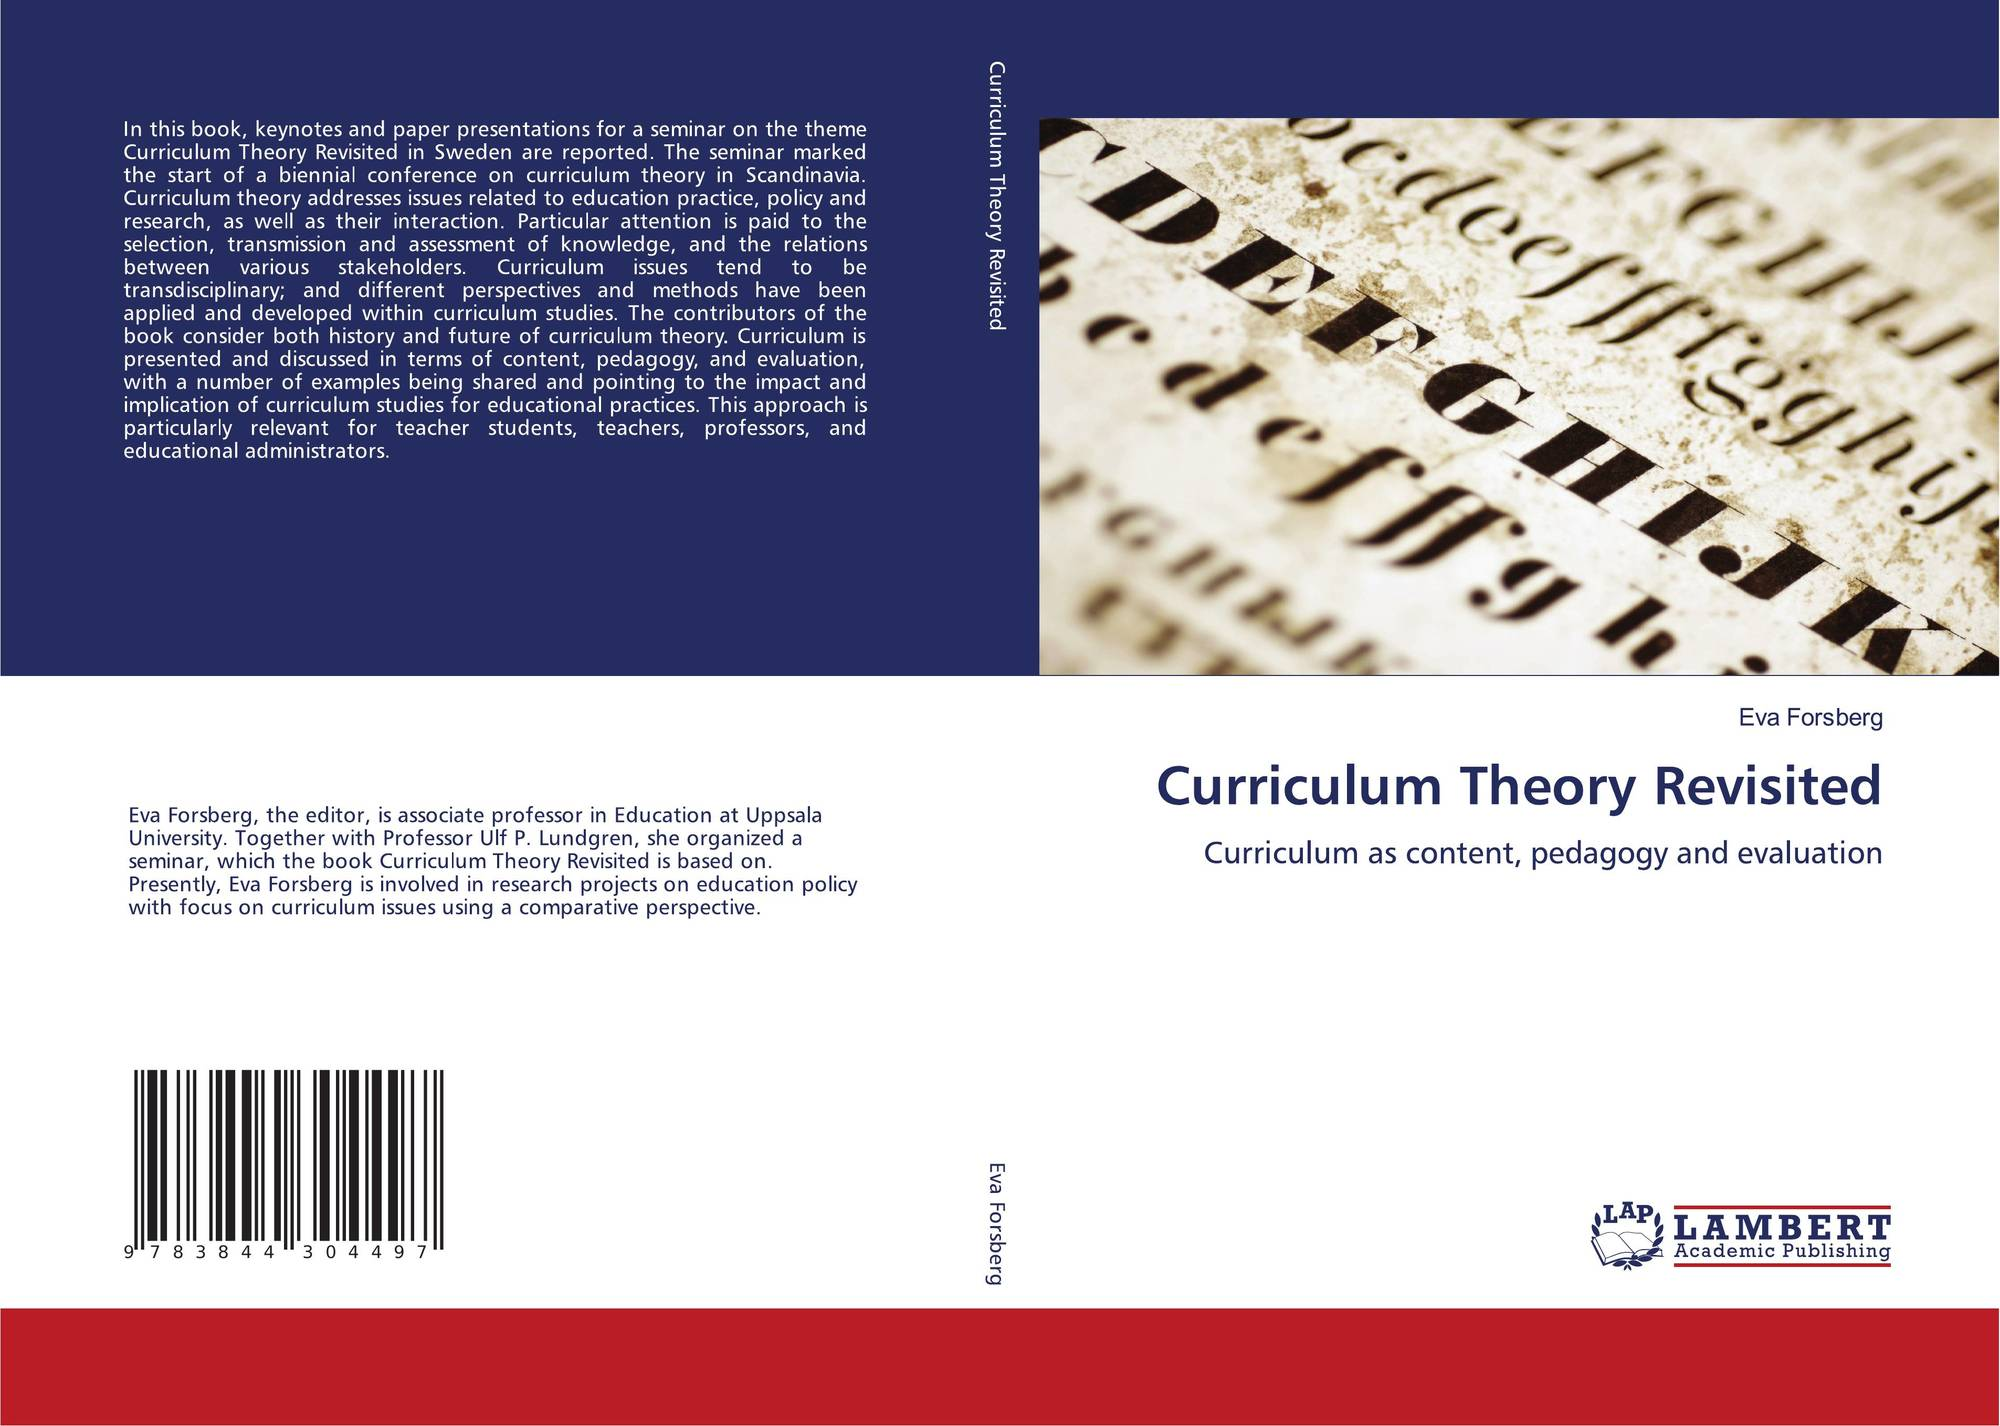 curriculum and theoretical The tyler model, developed by ralph tyler in the 1940's, is the quintessential prototype of curriculum development in the scientific approach one could almost dare to say that every certified teacher in america and maybe beyond has developed curriculum either directly or indirectly using this.